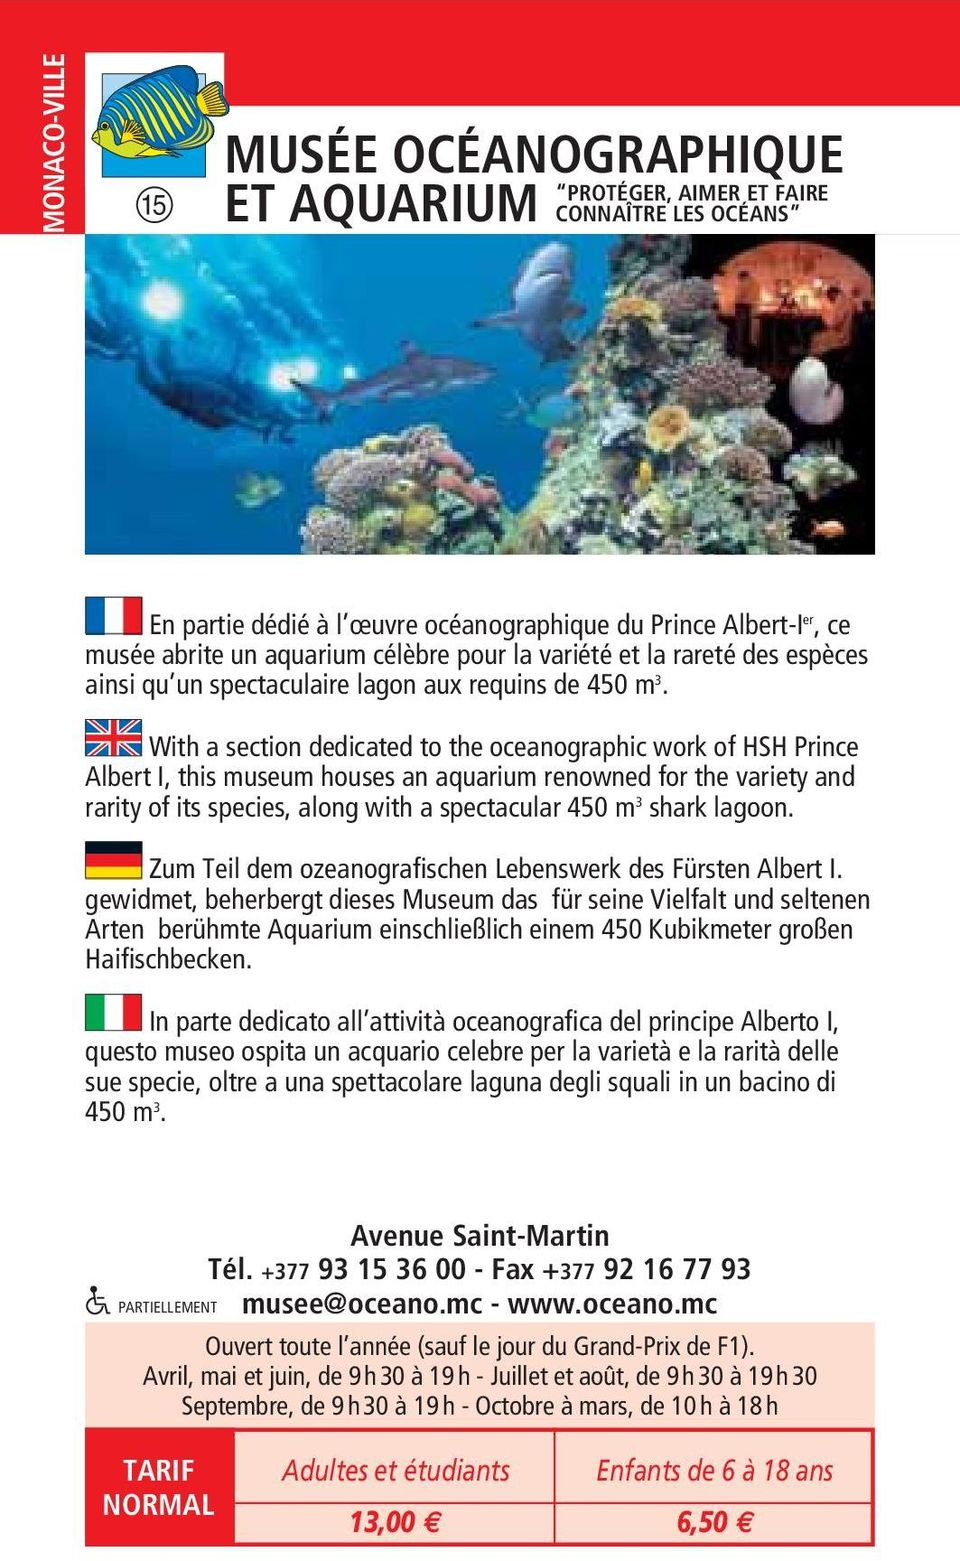 With a section dedicated to the oceanographic work of HSH Prince Albert I, this museum houses an aquarium renowned for the variety and rarity of its species, along with a spectacular 450 m 3 shark